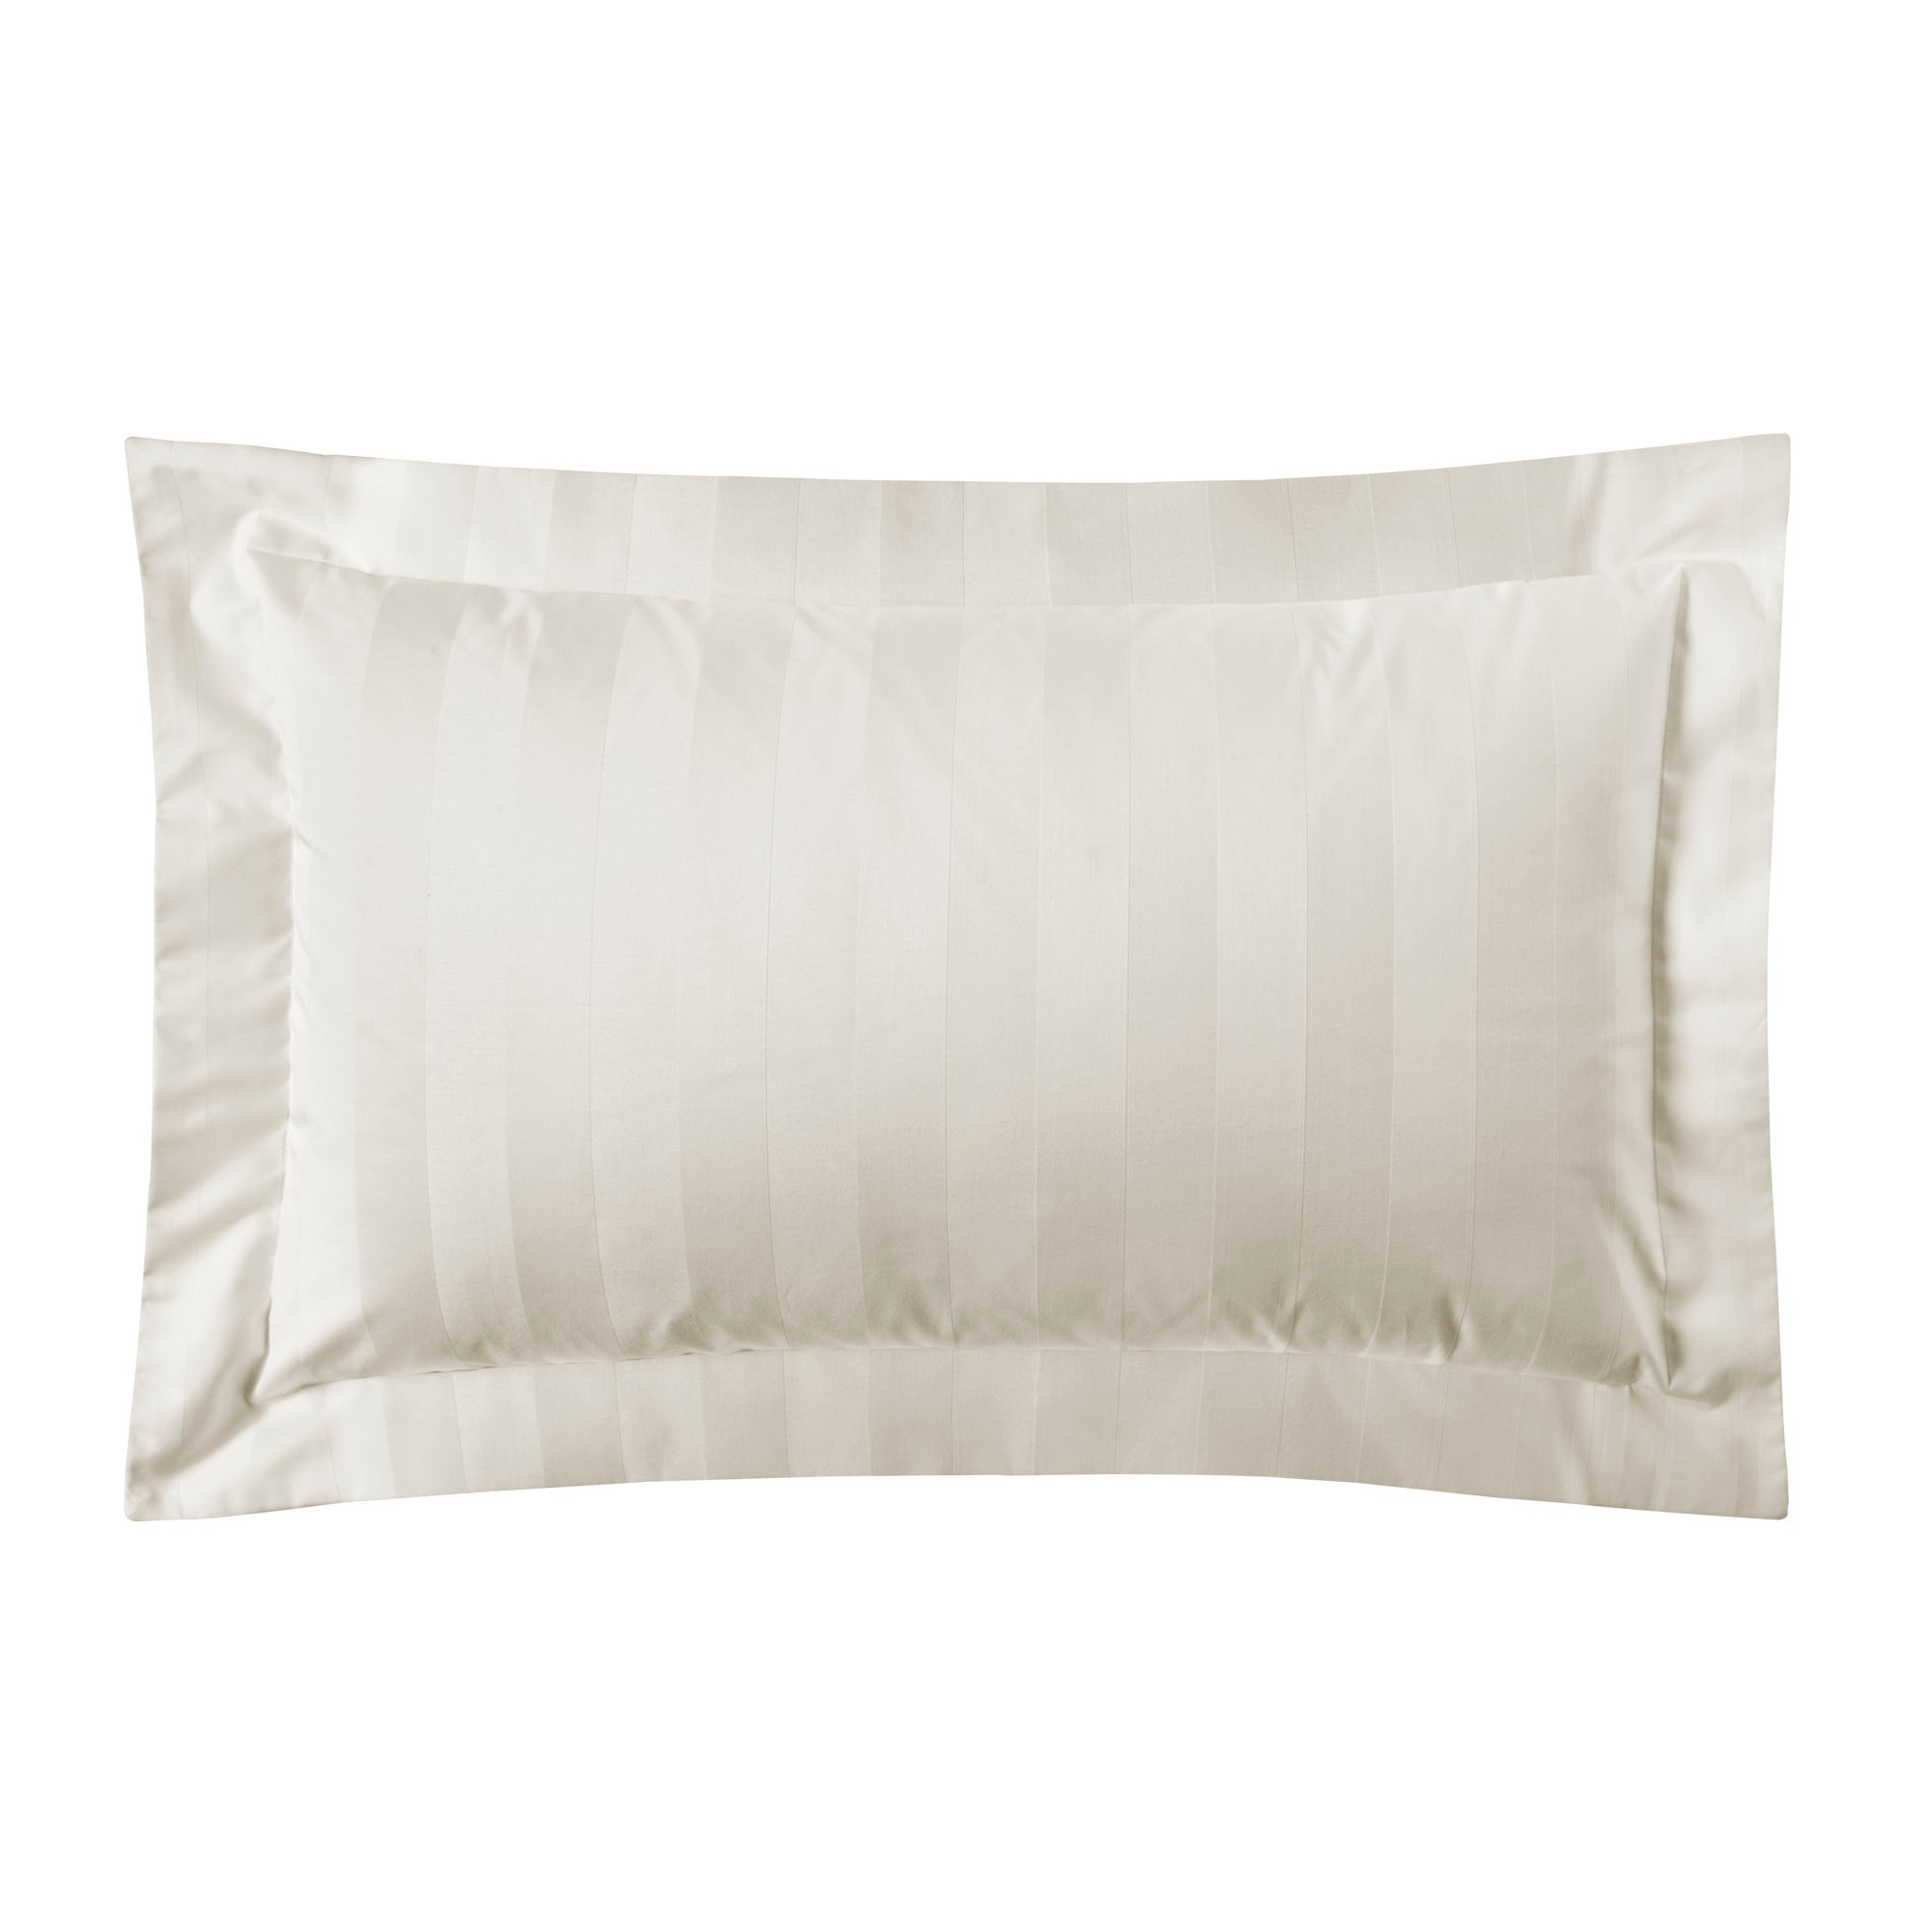 Cream Hotel Stripe 300 Thread Count Collection Oxford Pillowcase